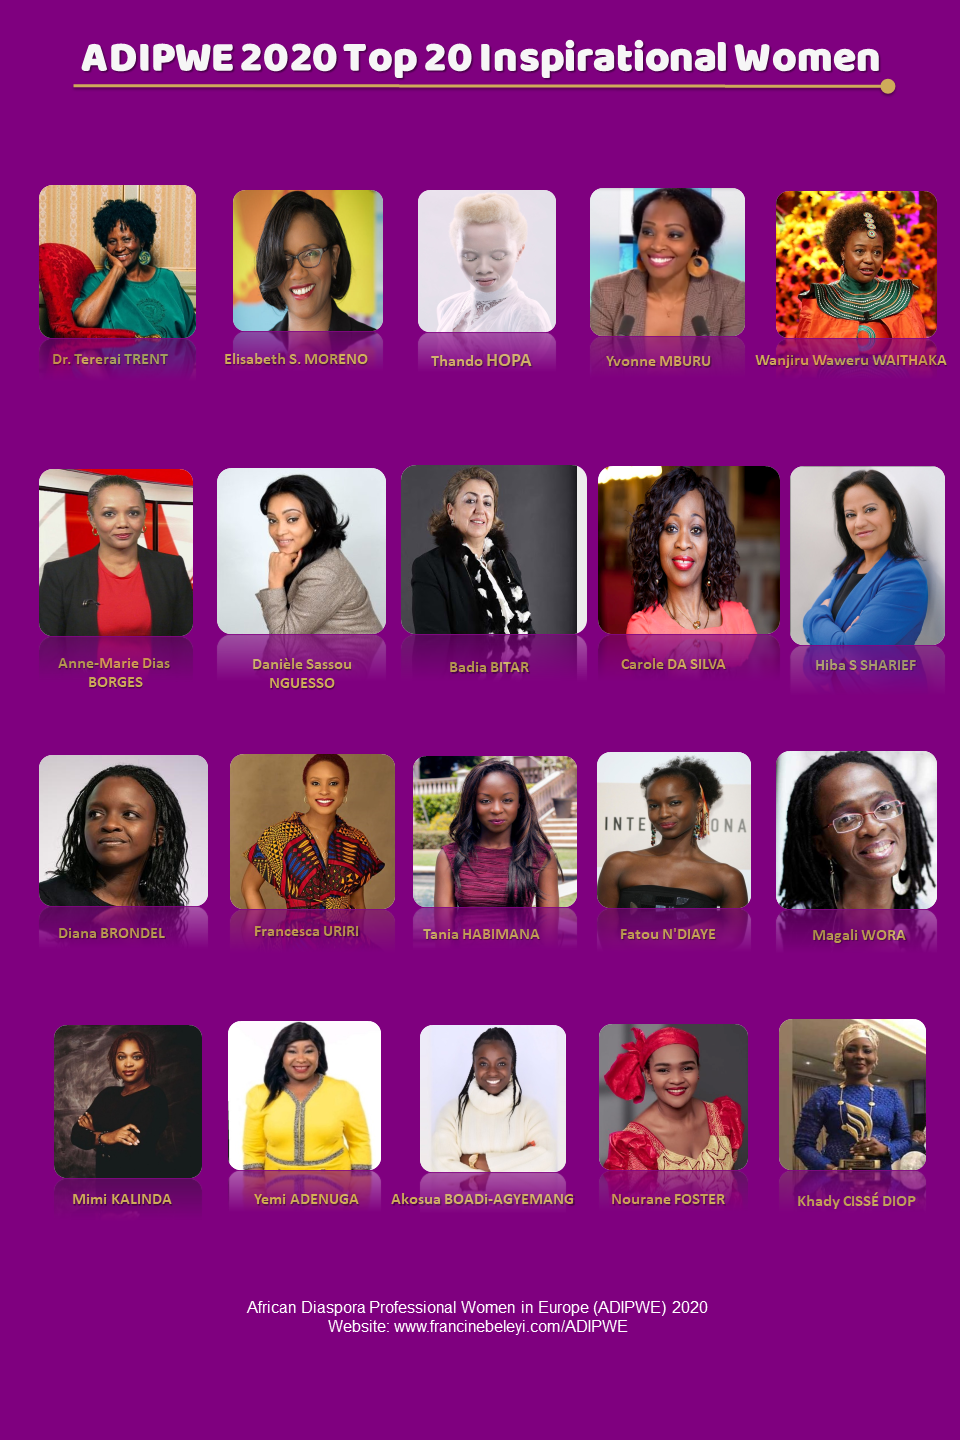 20 Women ADIPWE List 2020 - African Diaspora Professional Women in Europe - IWD2020